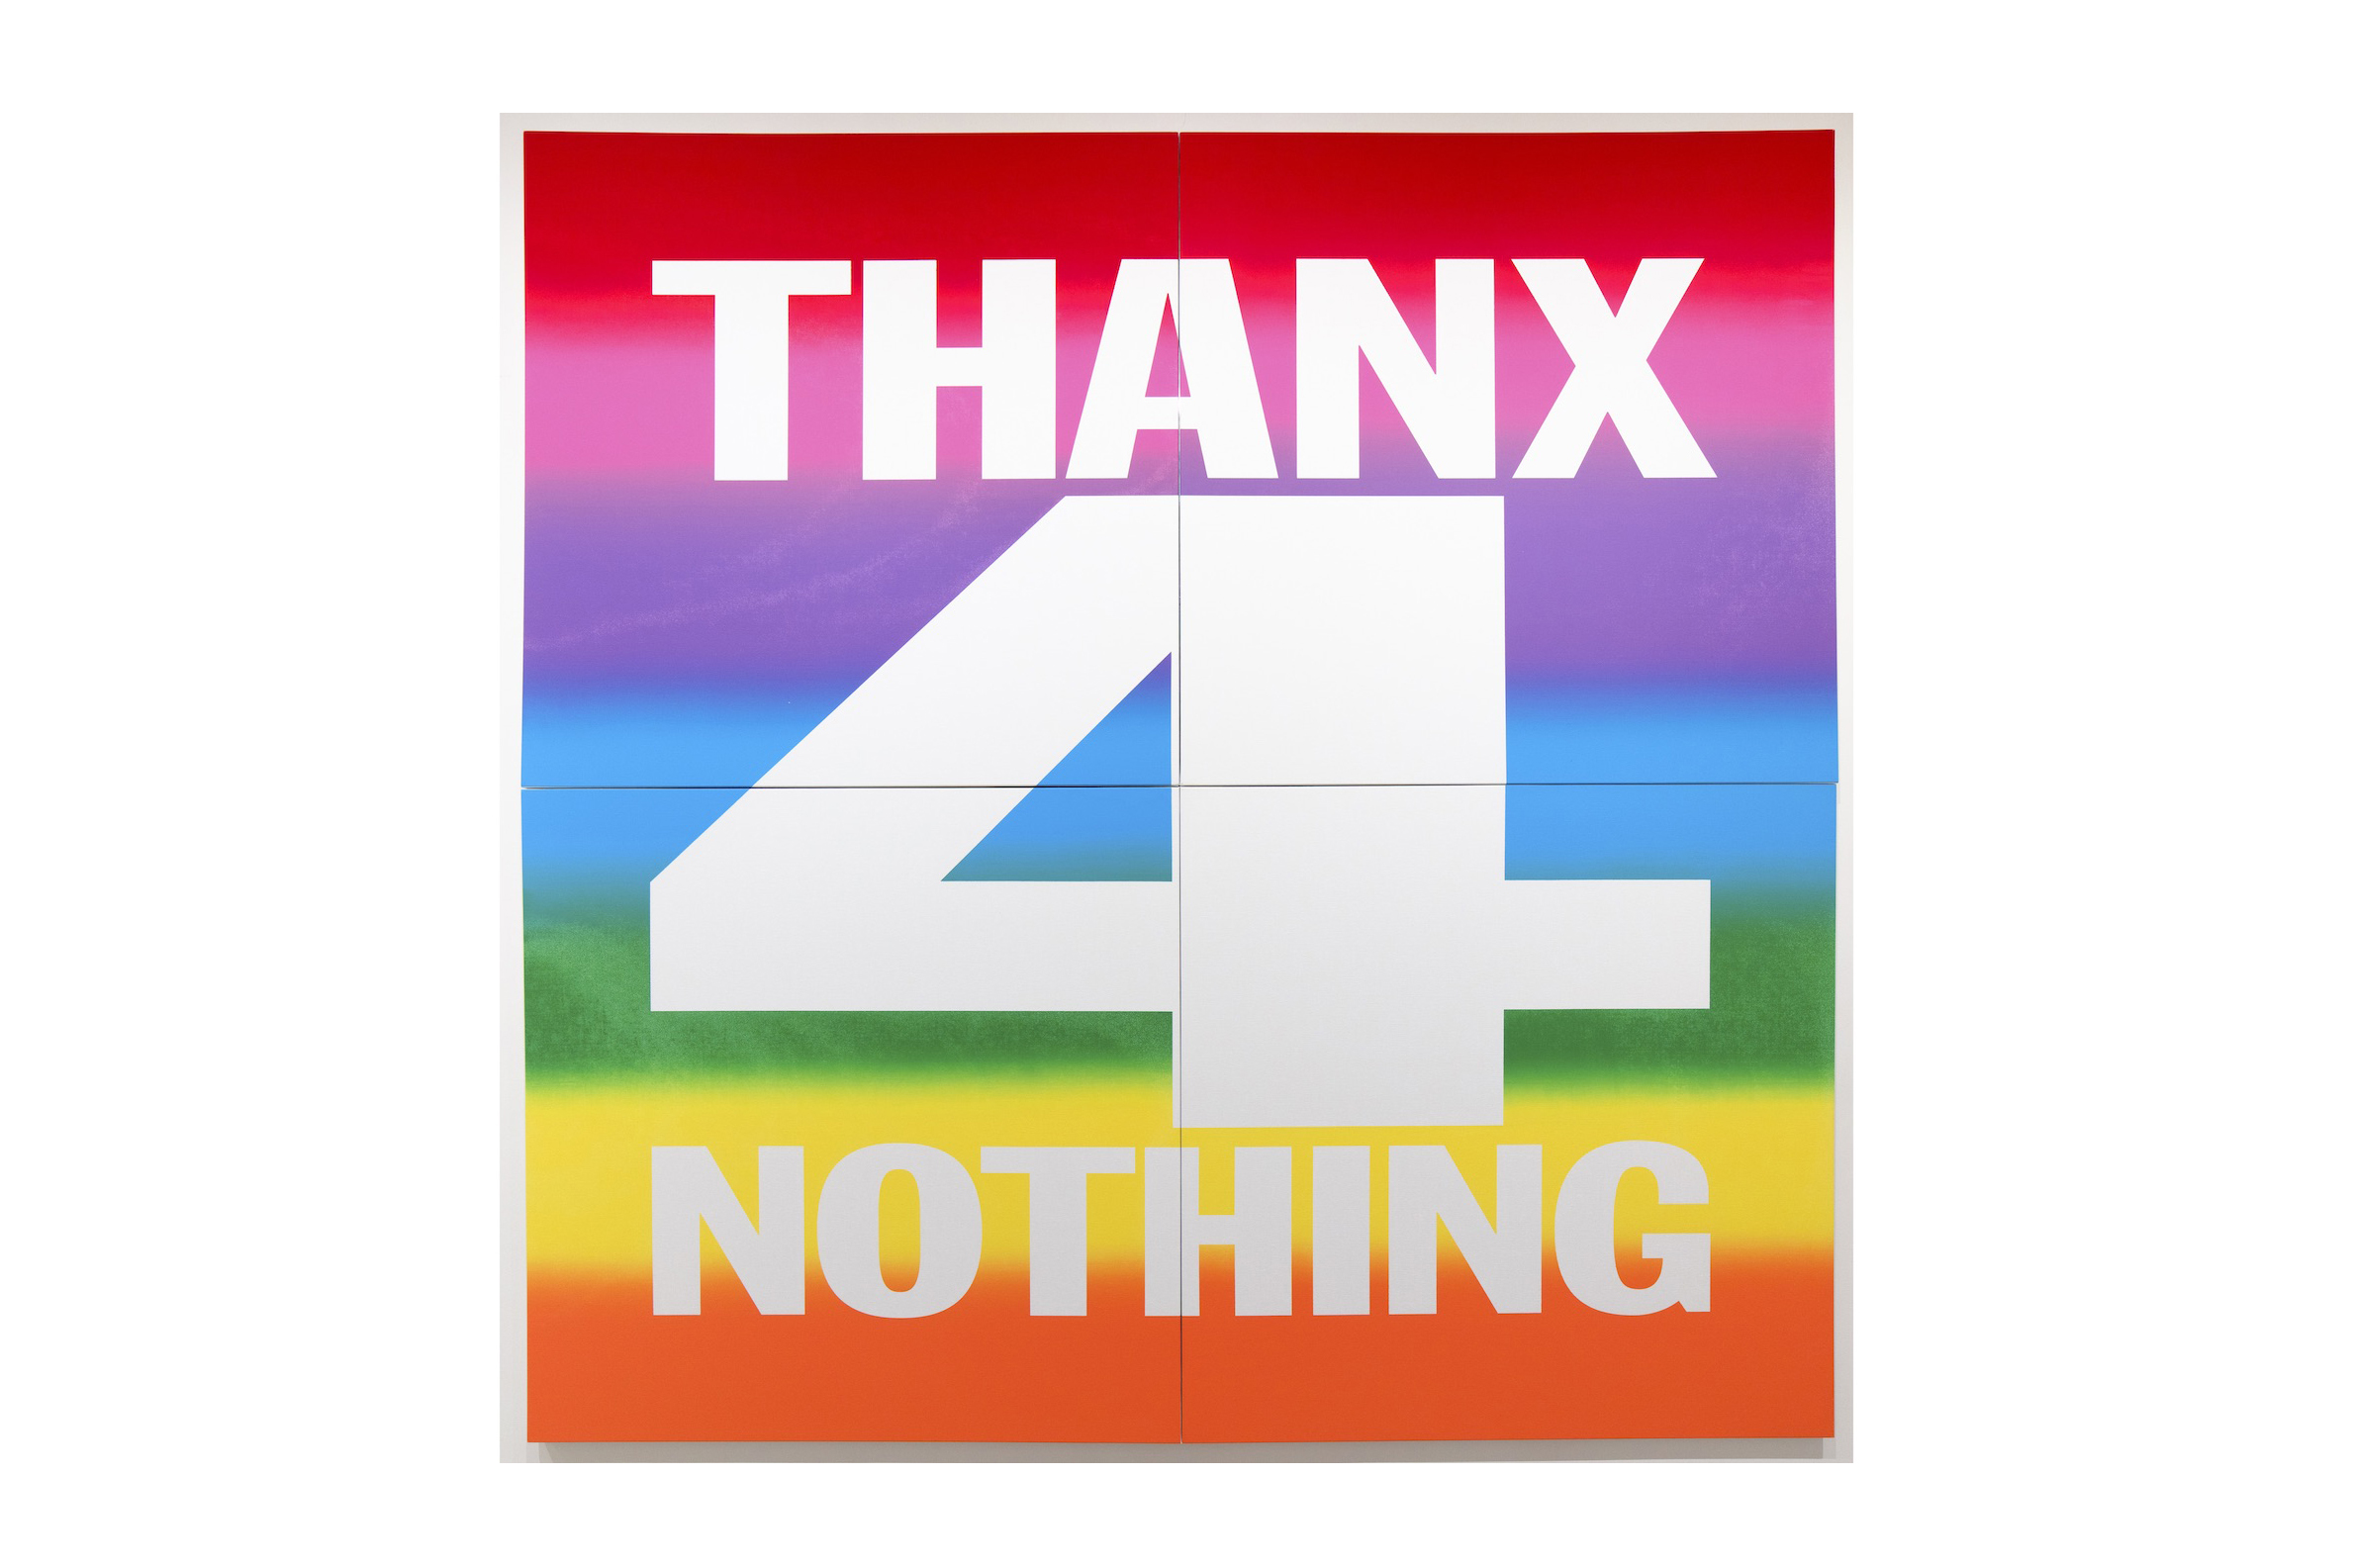 John Giorno THANX 4 NOTHING, 2019